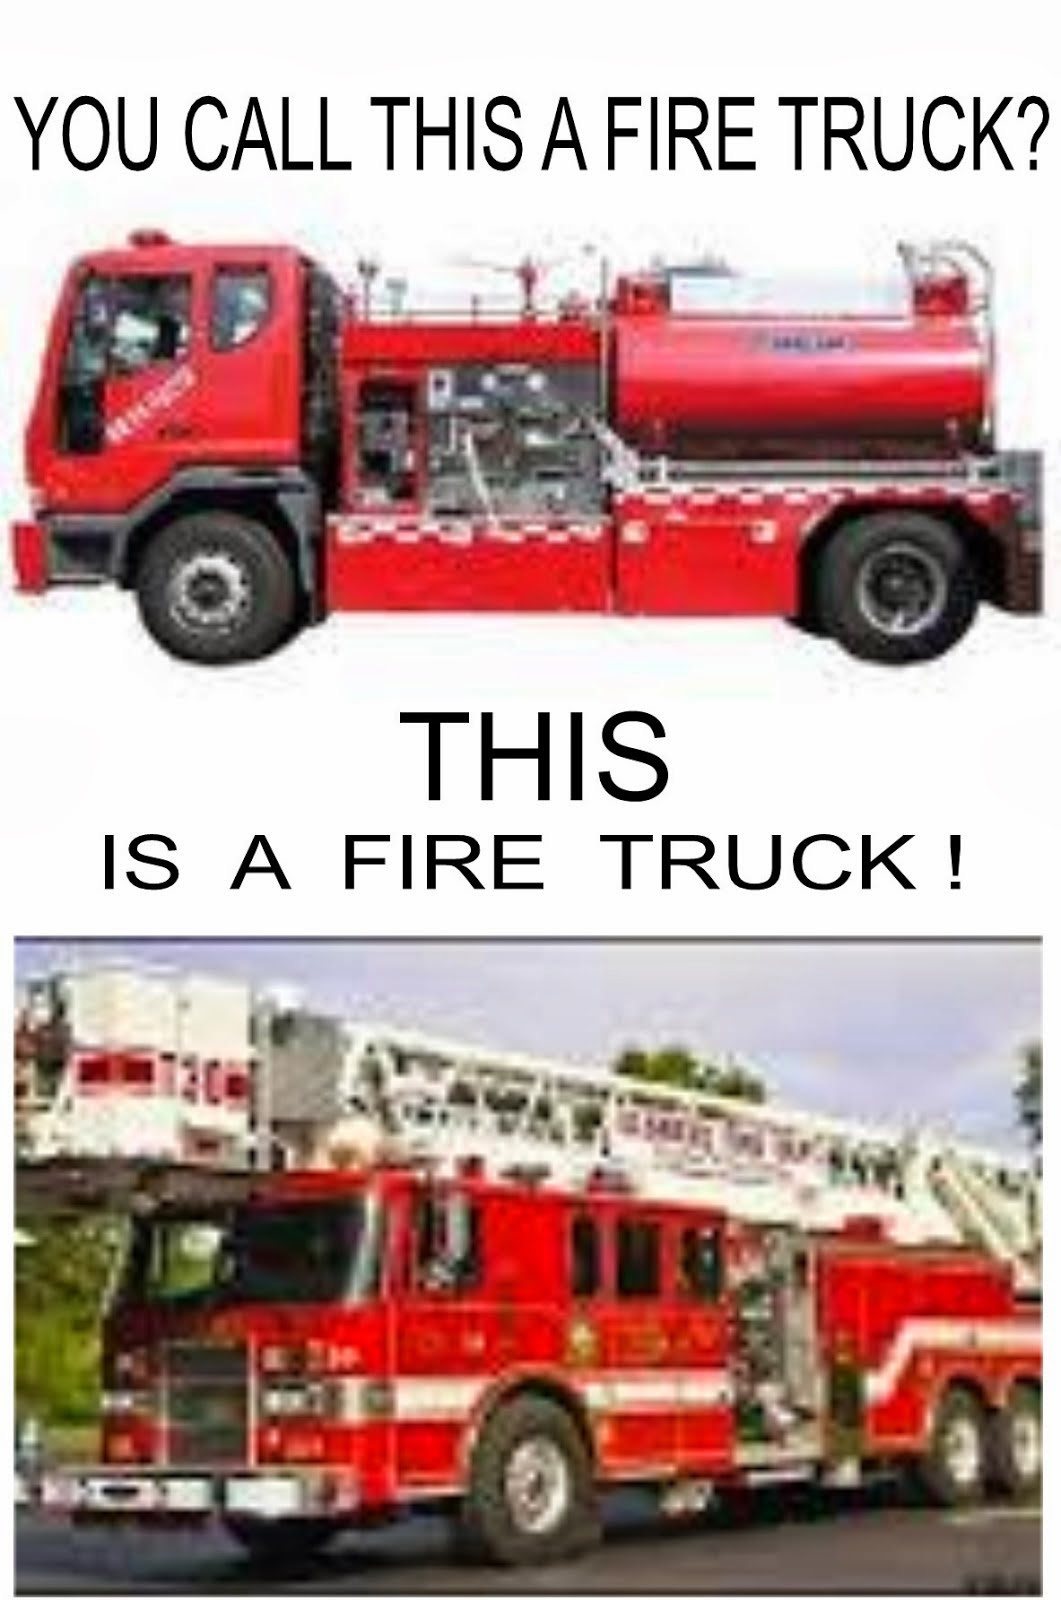 WHAT SOME PEOPLE CALL A FIRE TRUCK  WE CALL A HOTWHEELS